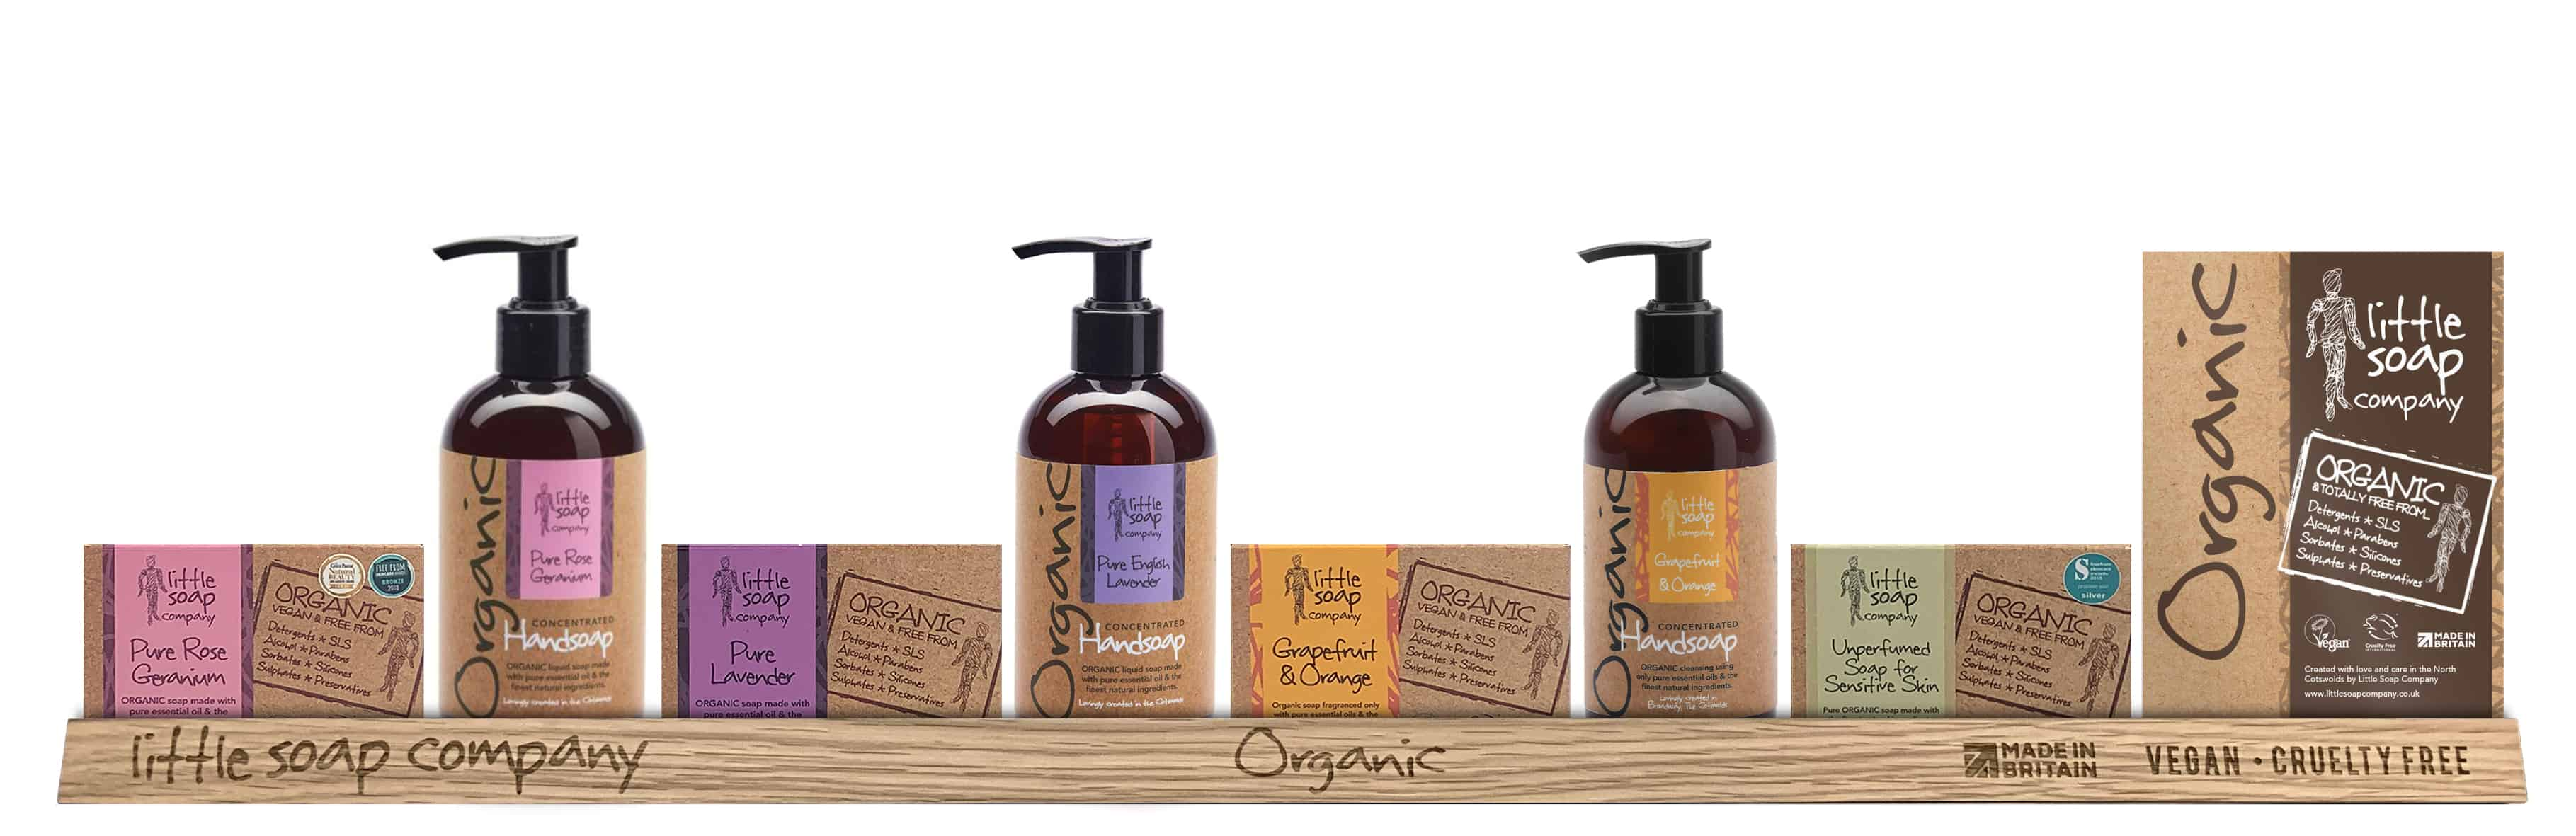 Organic September: Three Little Reasons to Choose Organic For Your Family _LittleSoapCompany.co.uk